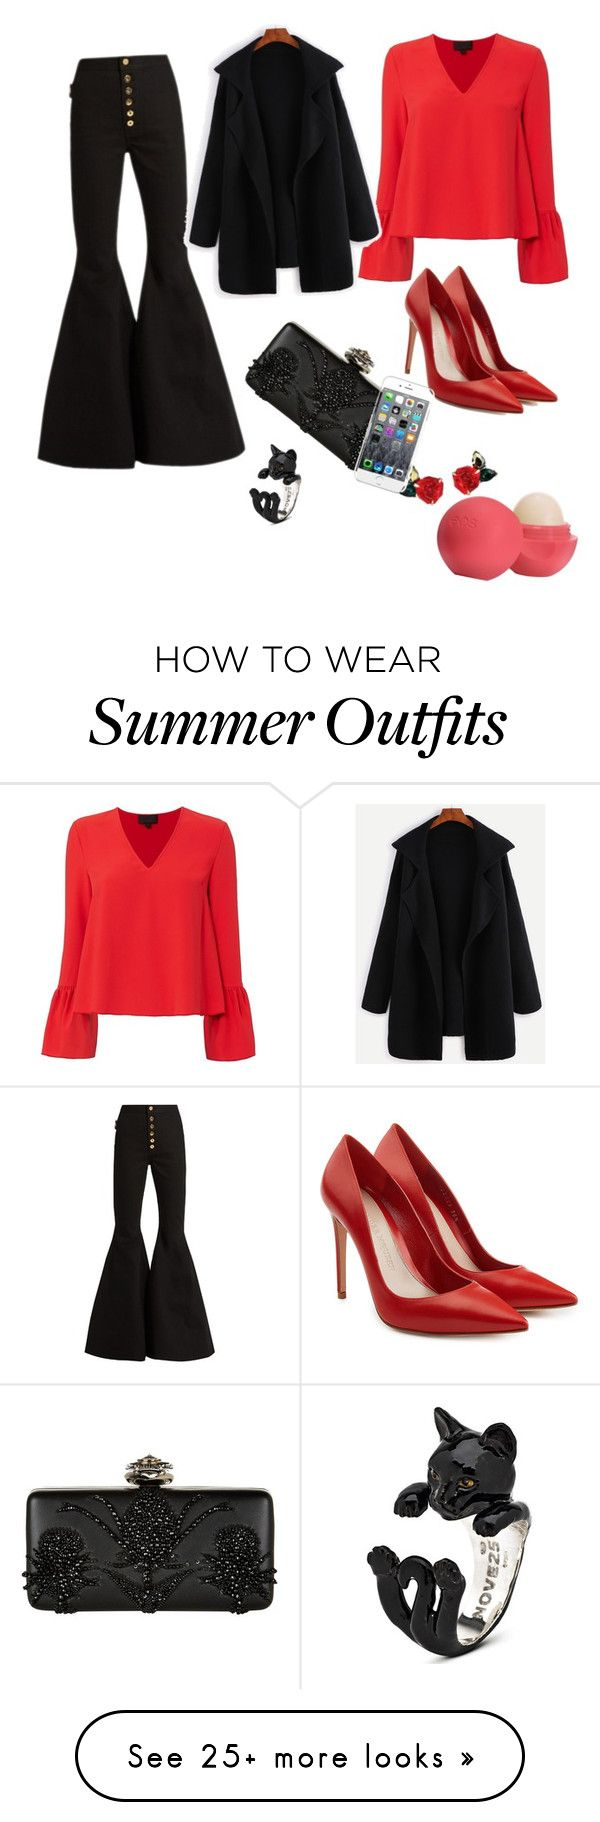 """Elegant outfit"" by monicapavel on Polyvore featuring E L L E R Y, Exc..."